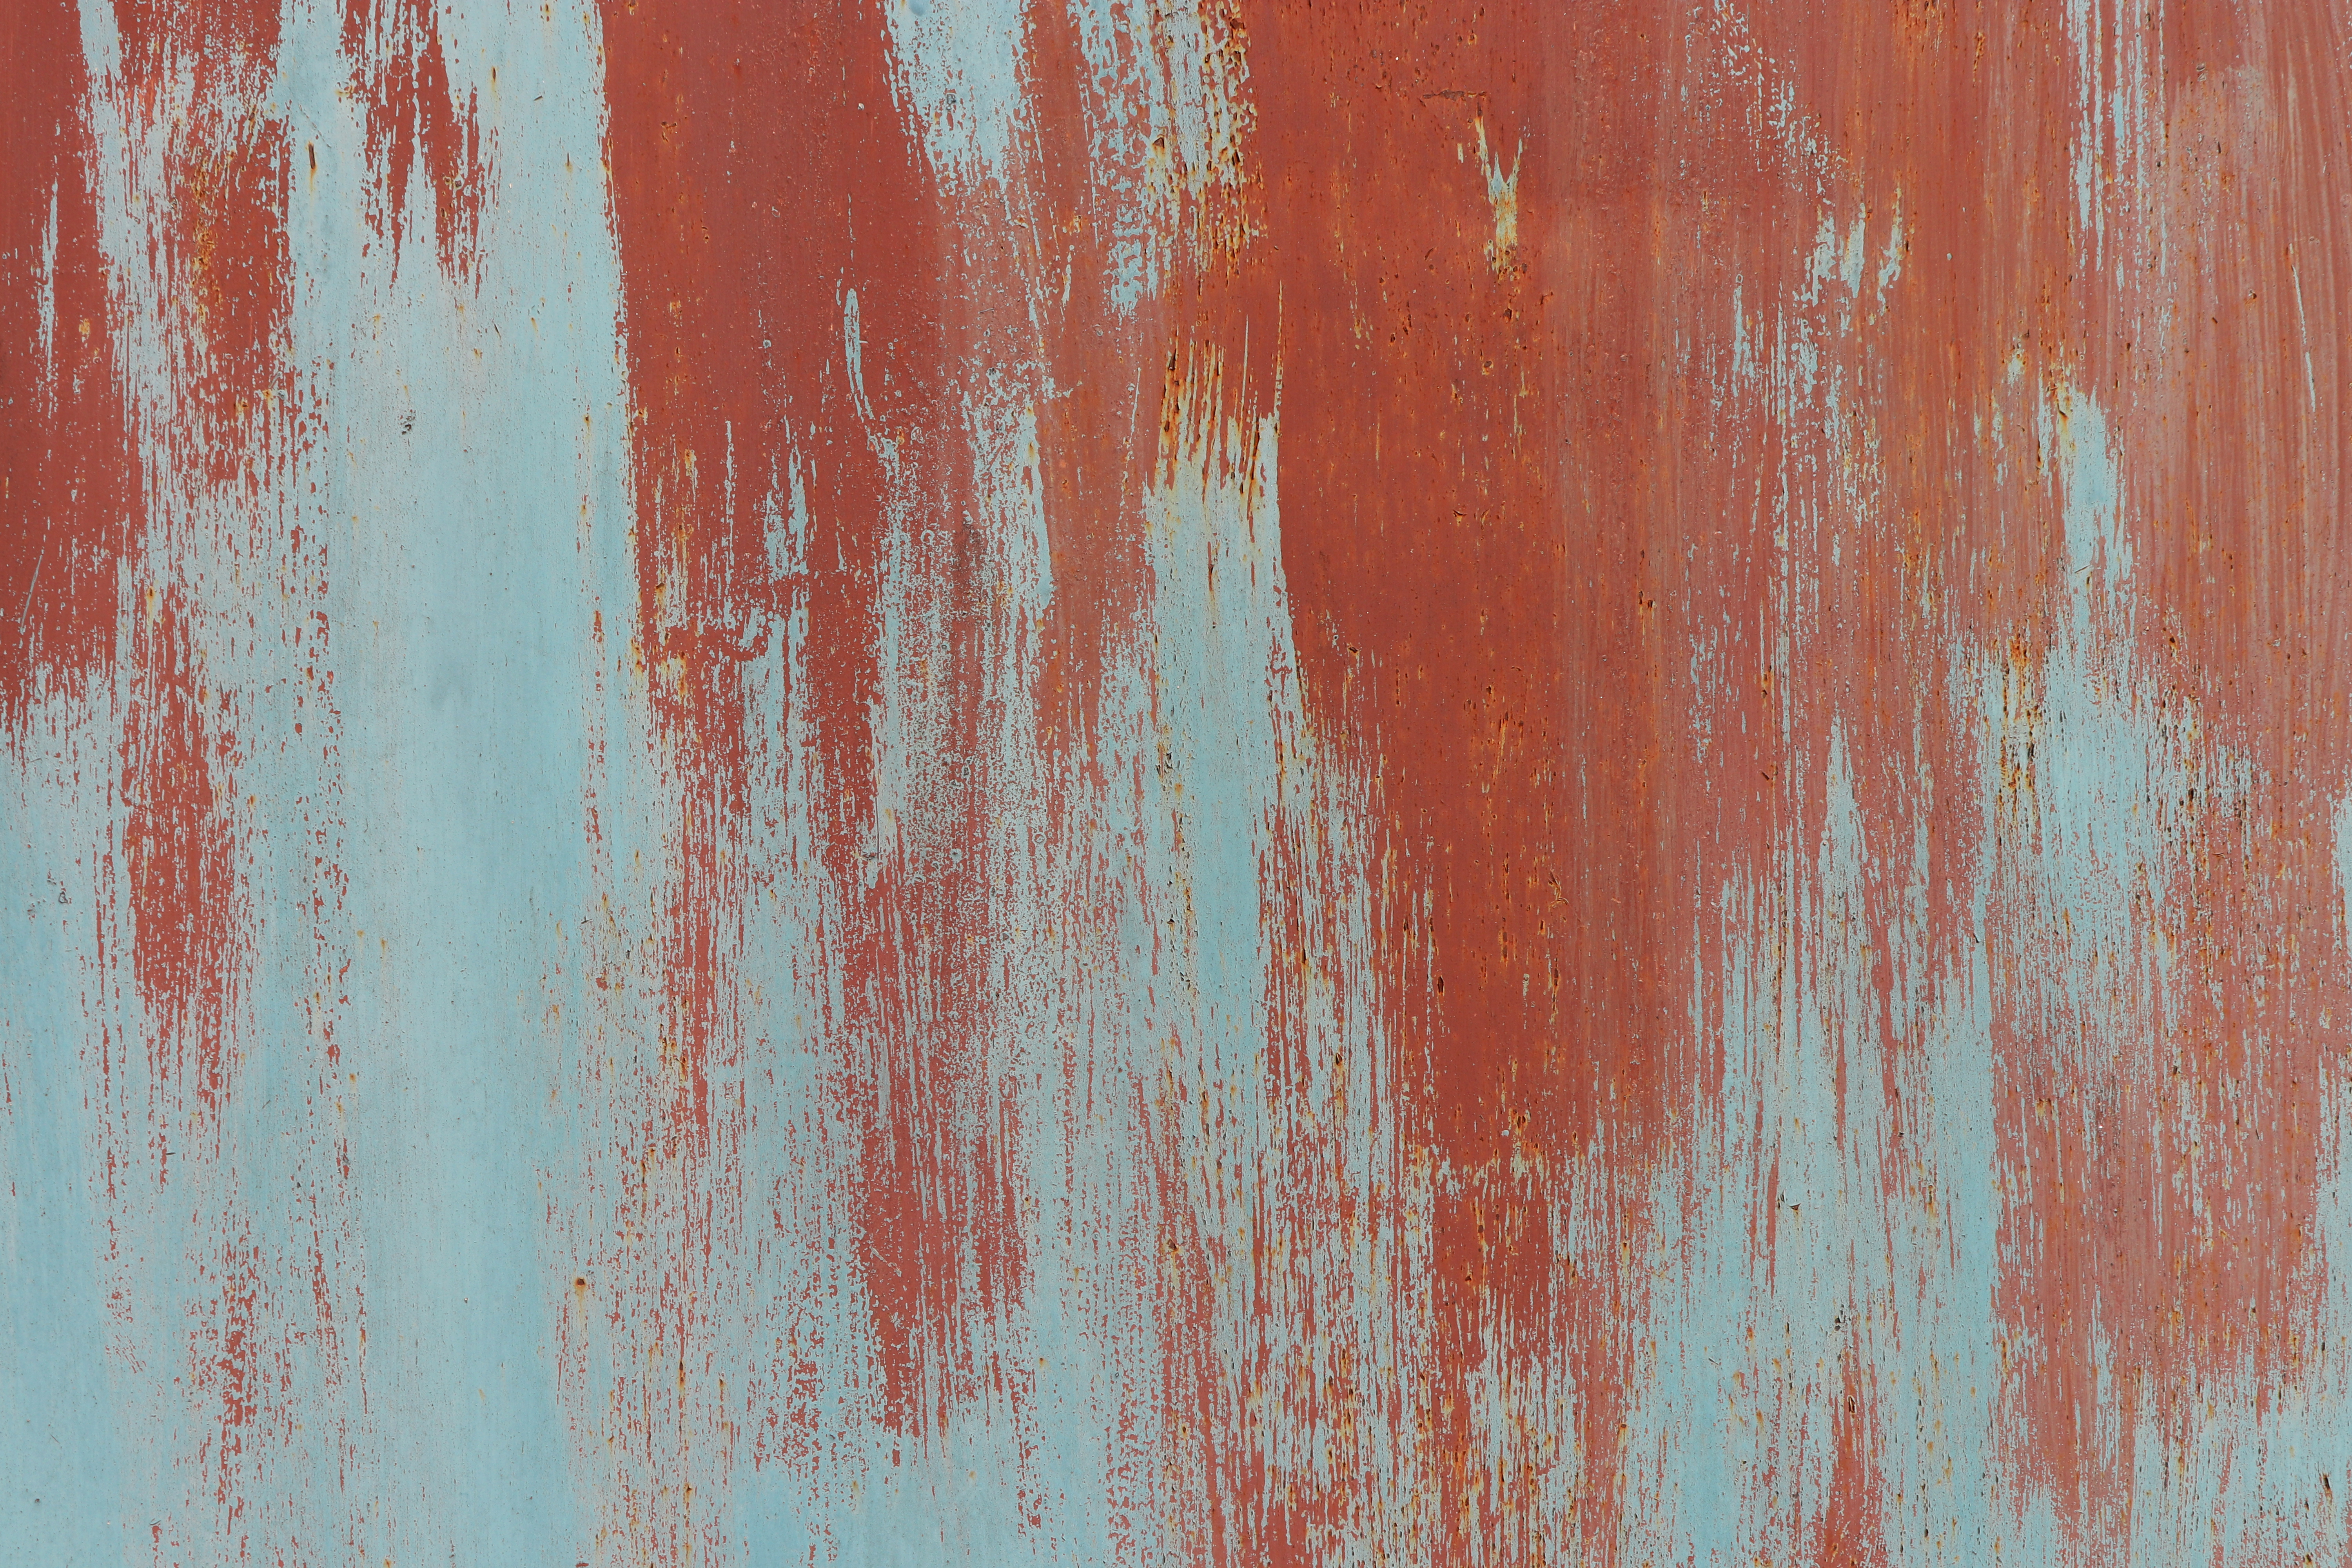 Old Weathered Blue Rust on Red Painted Wall Texture. Brush Strokes.